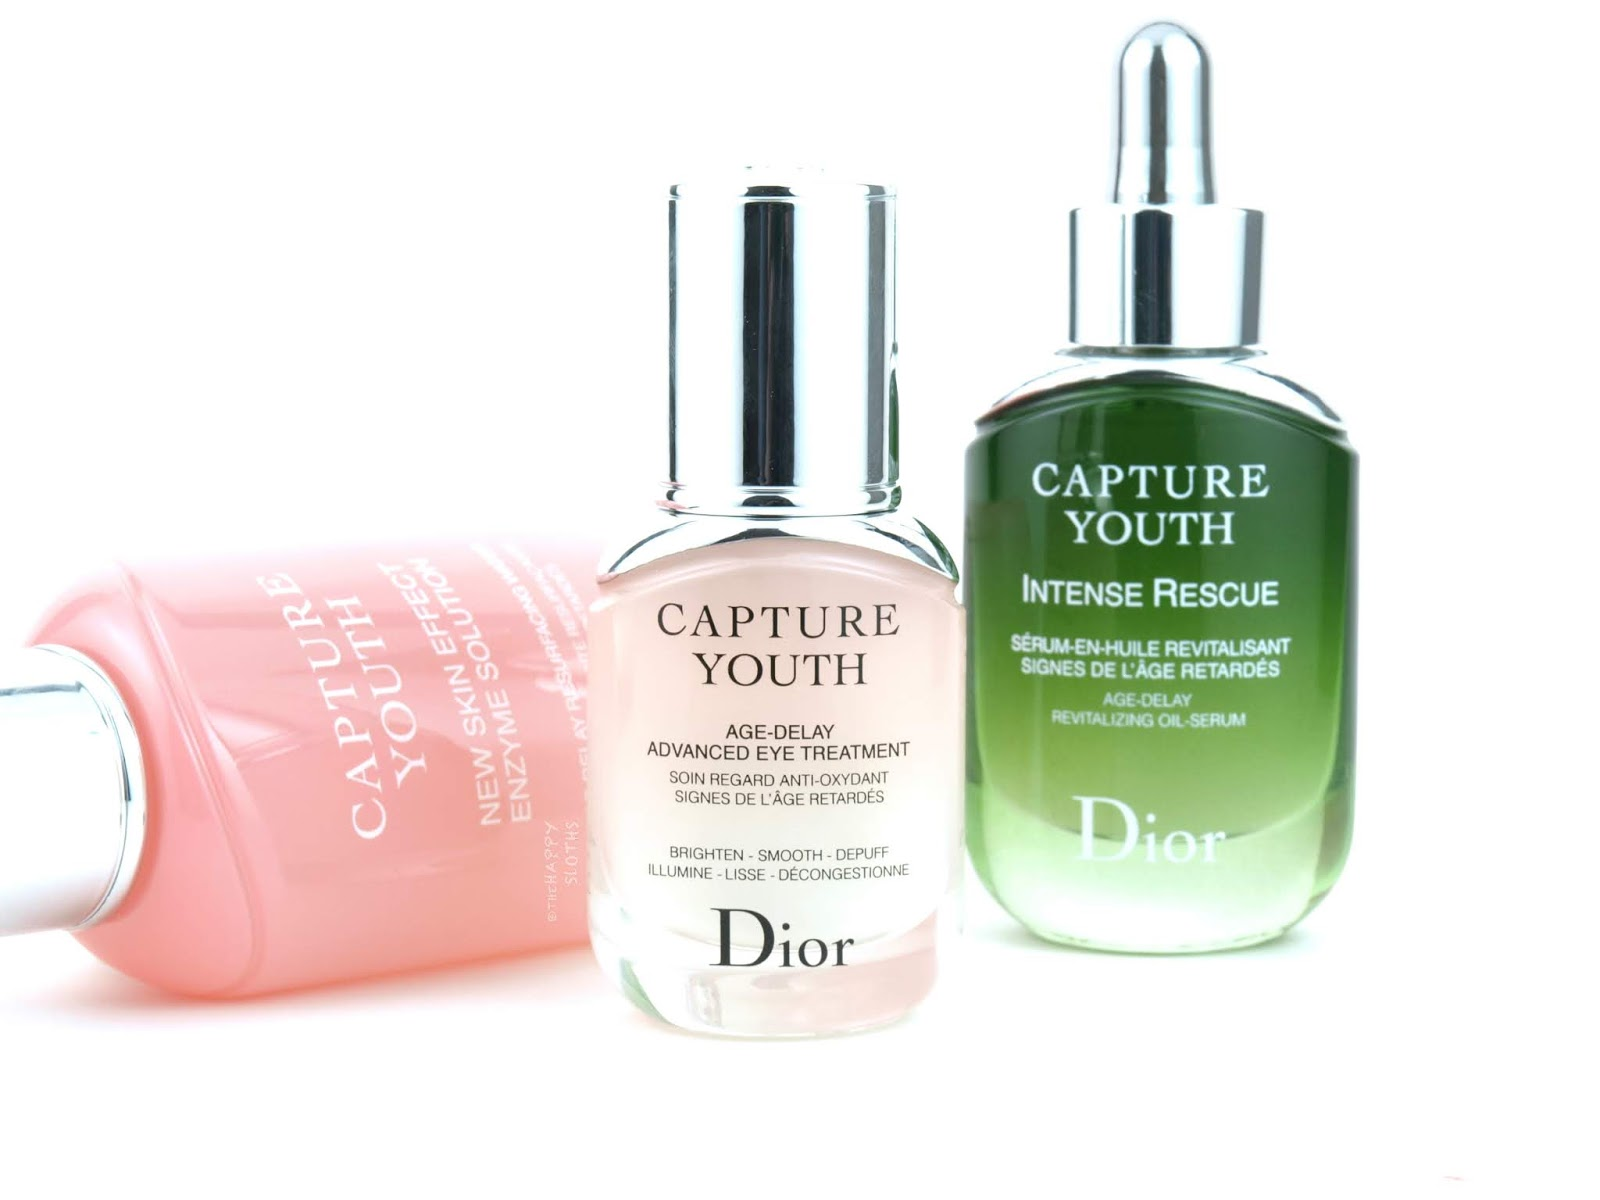 Dior | Youth Capture Age-Delay Advanced Eye Treatment: Review